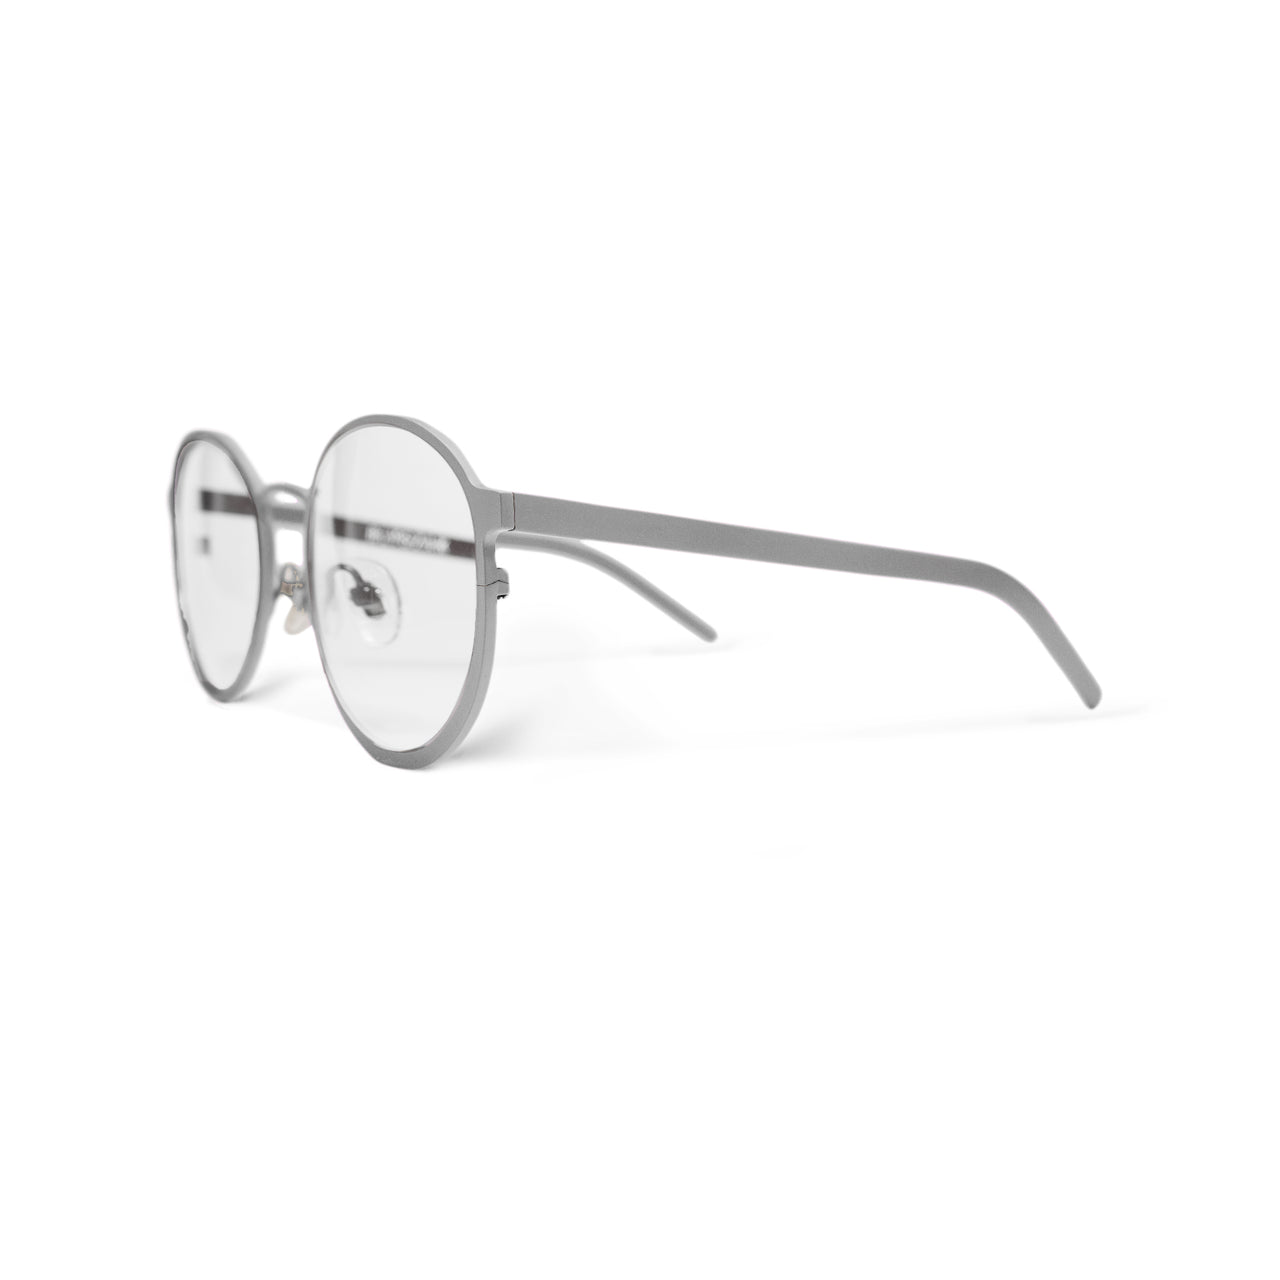 Metal. Brushed Silver. Clear Lens. - BLYSZAK eyewear  - eyewear, optical, sunglasses